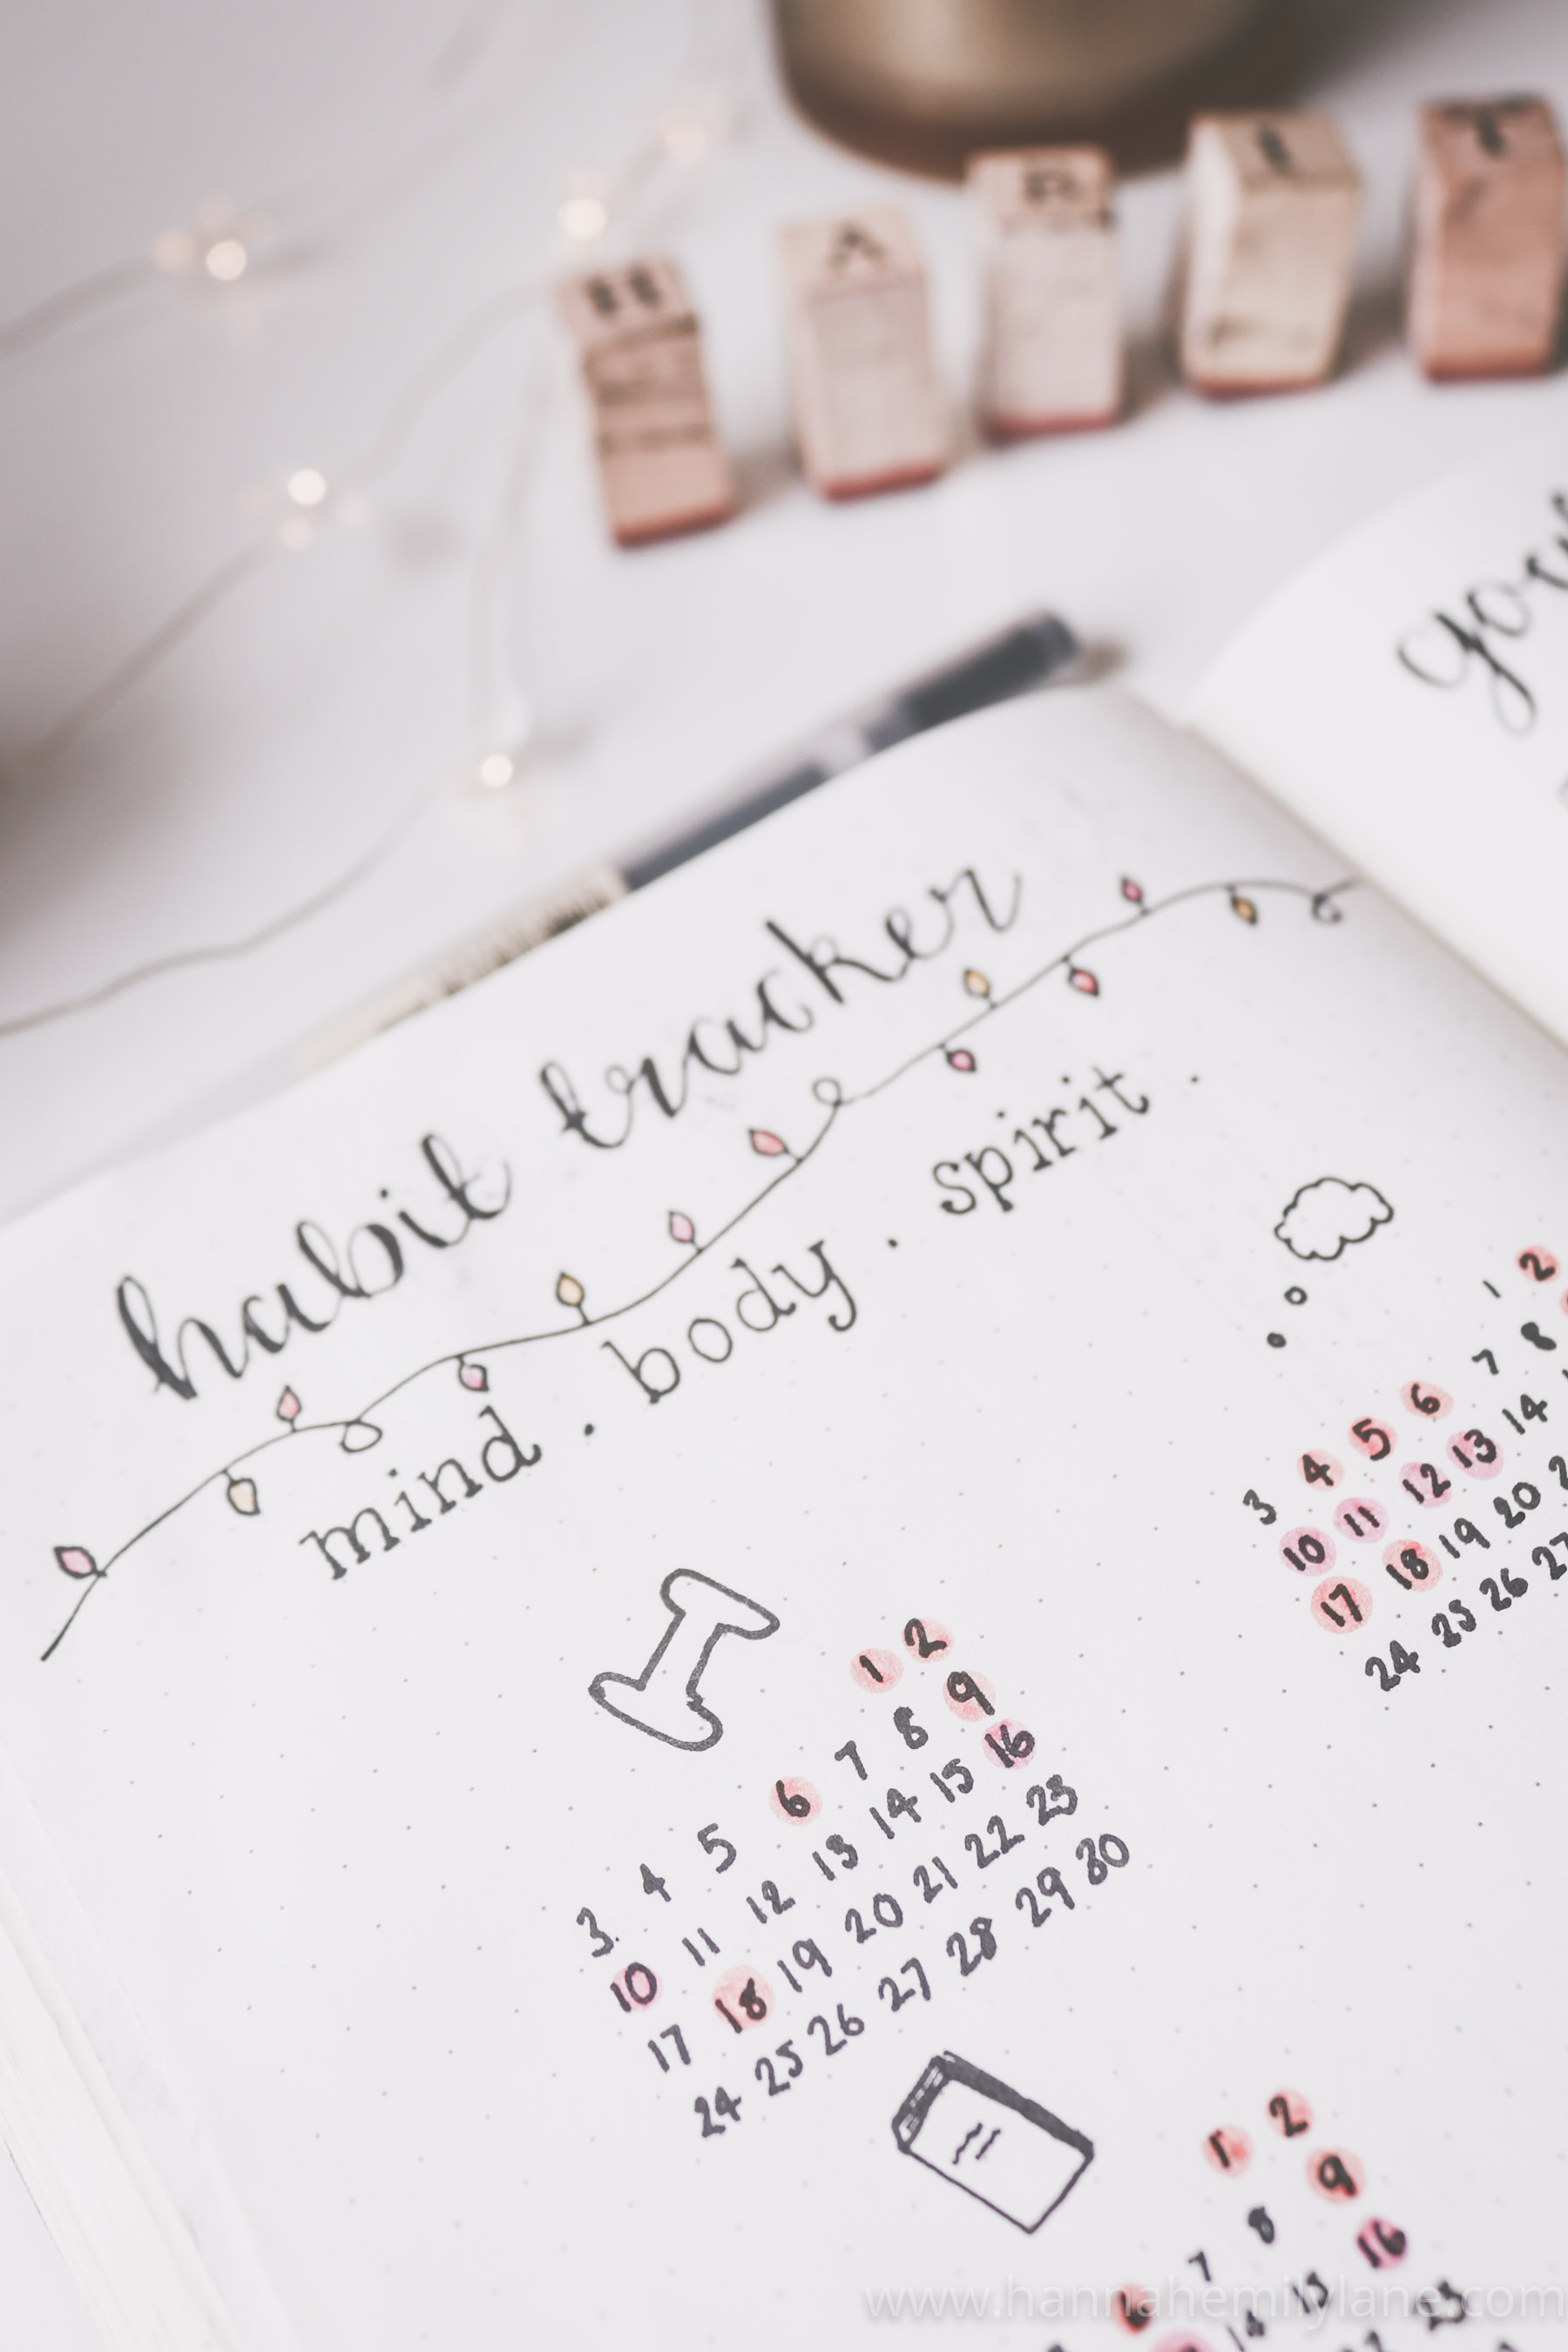 50 Habit tracker ideas - what to track and tips | www.hannahemilylane.com